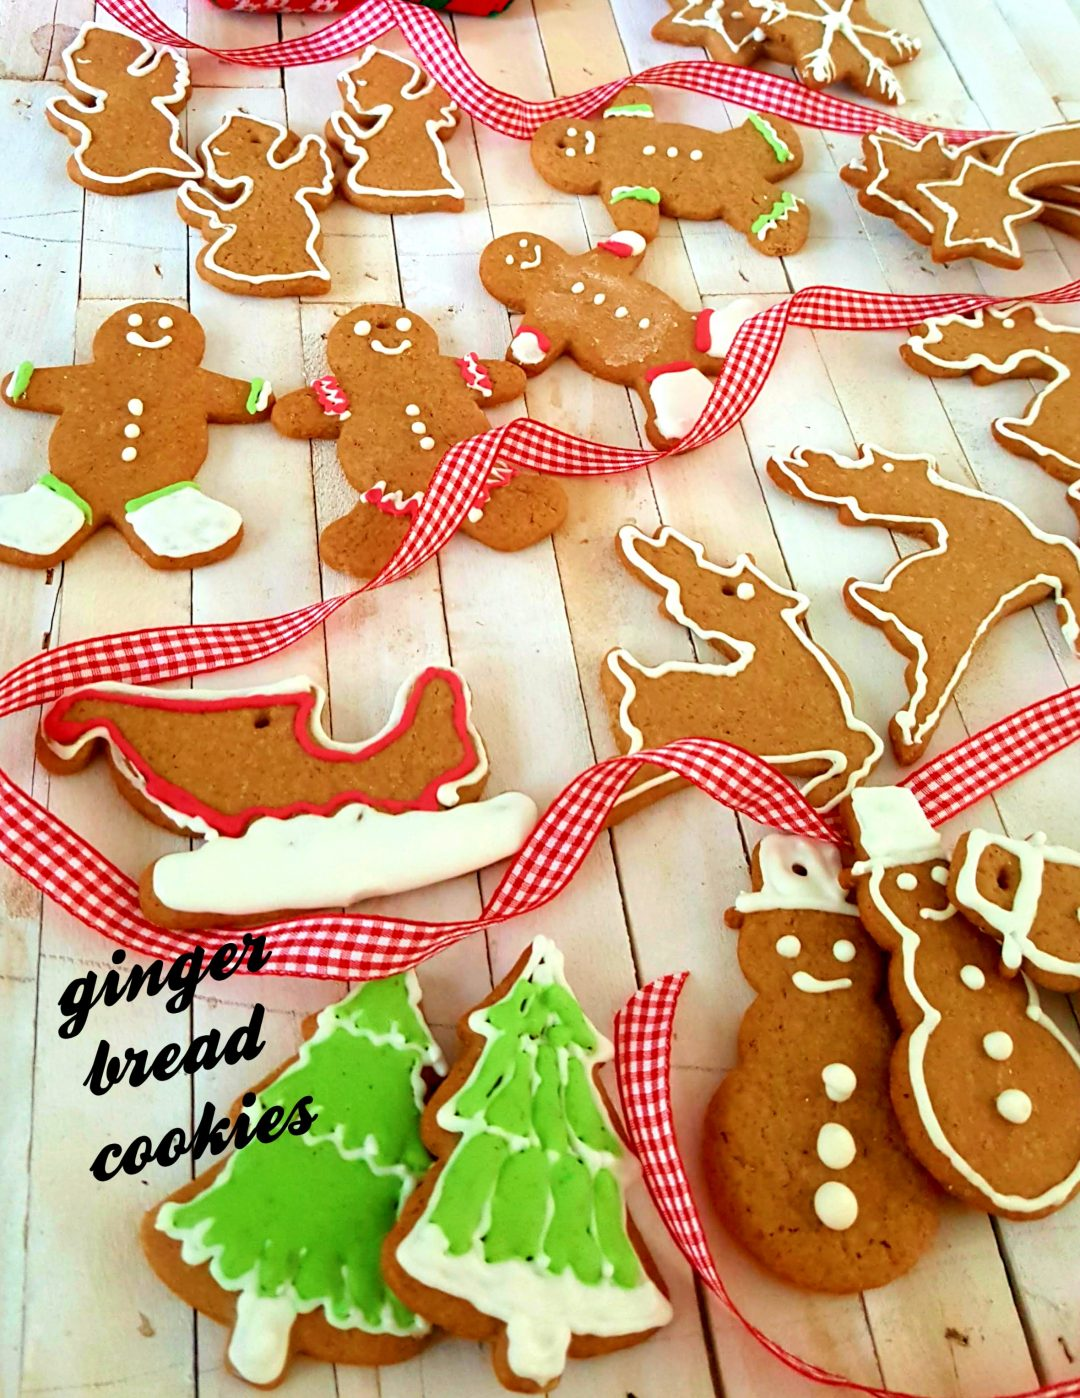 ginger-bread-cookies